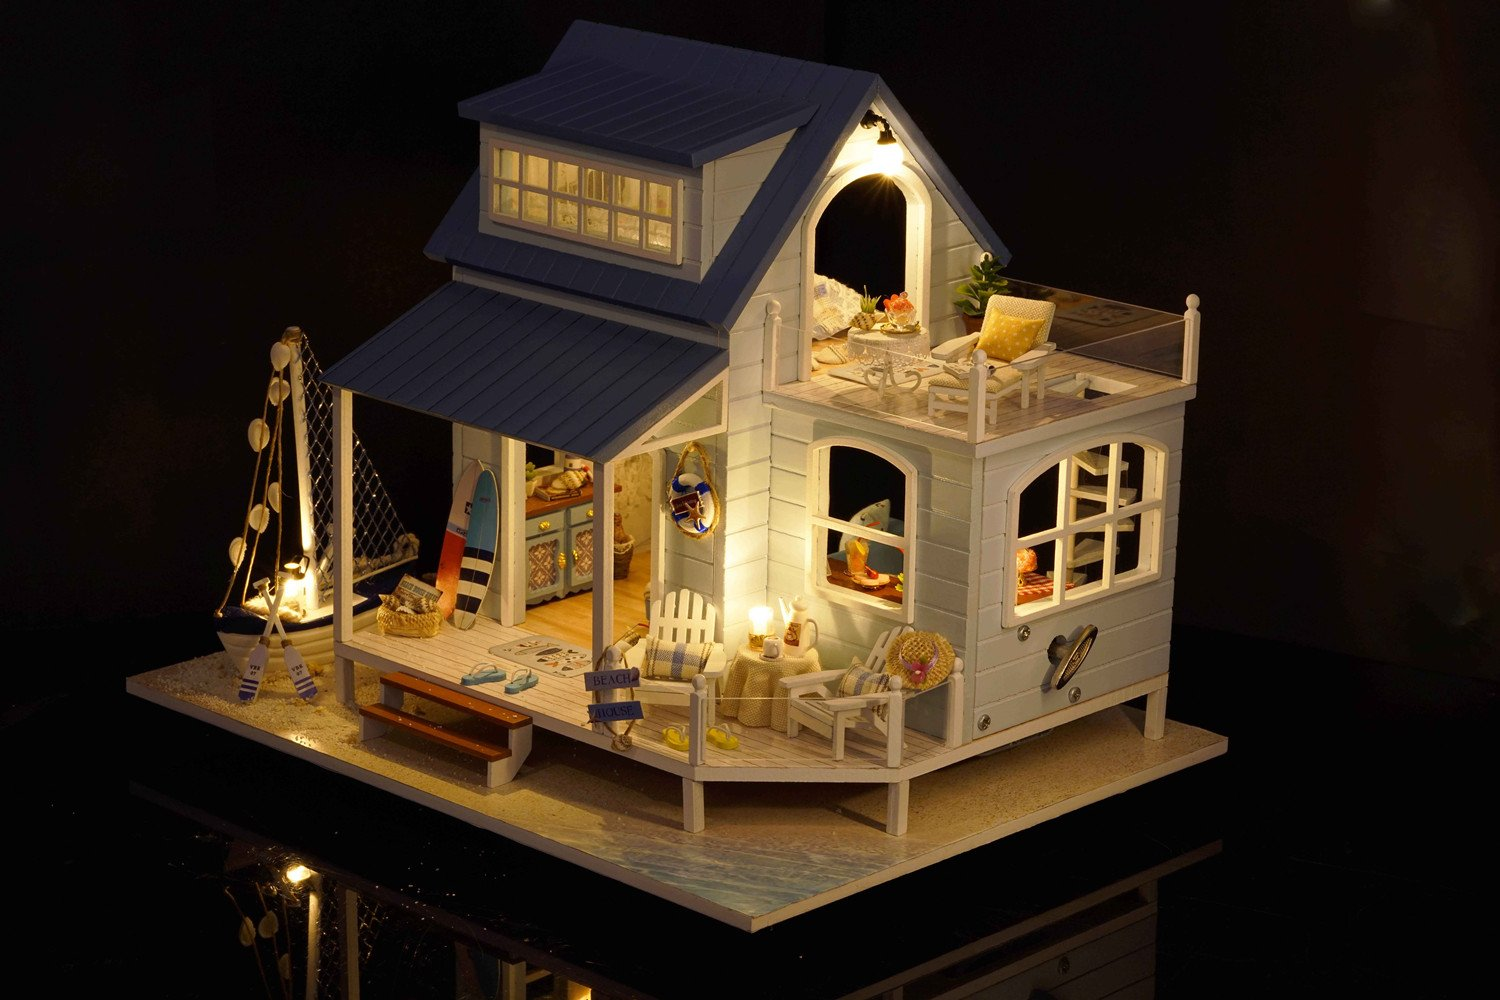 Time in Caribbean Sea Kisoy Romantic and Cute Dollhouse Miniature DIY House Kit Creative Room Perfect DIY Gift for Friends,Lovers and Families